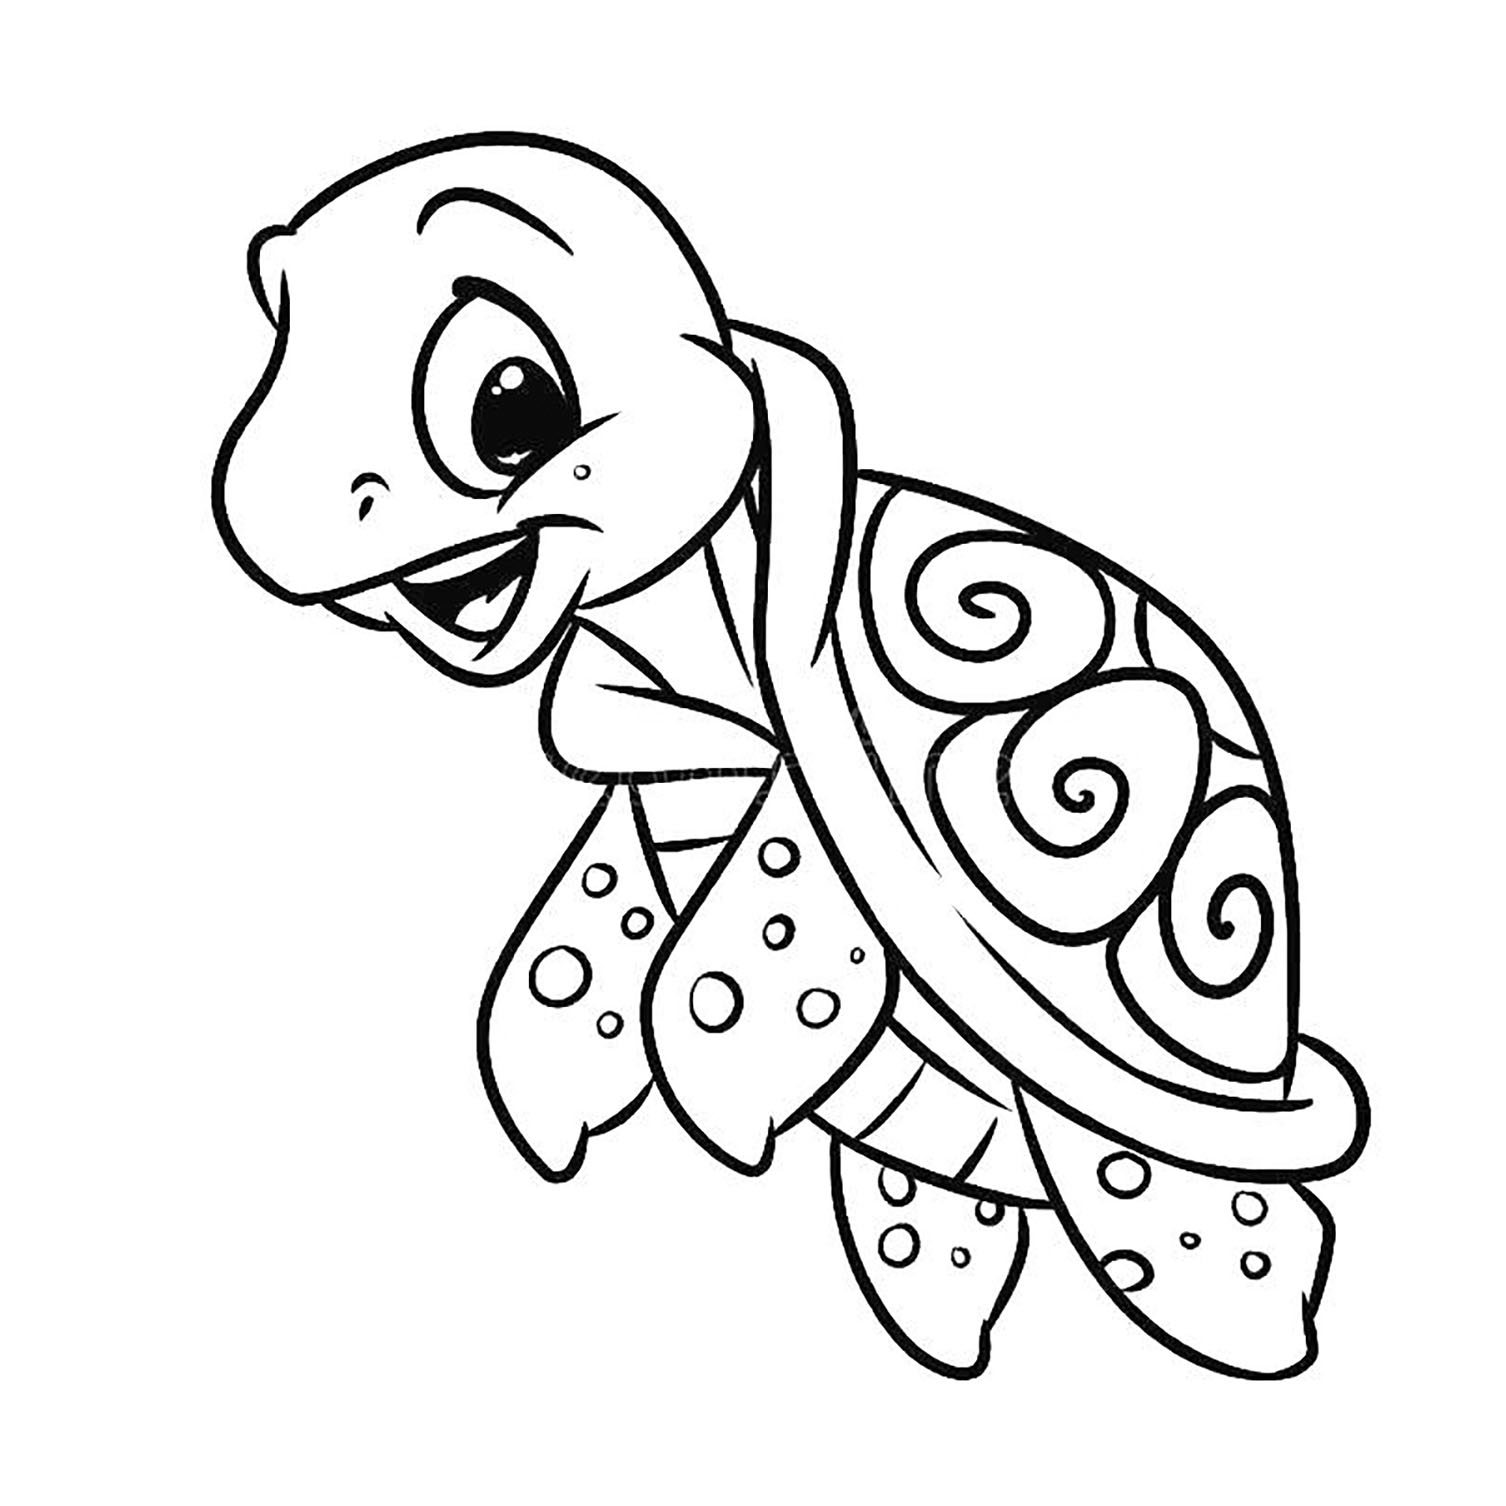 turtle coloring pictures to print coloring pages turtles free printable coloring pages print to coloring turtle pictures